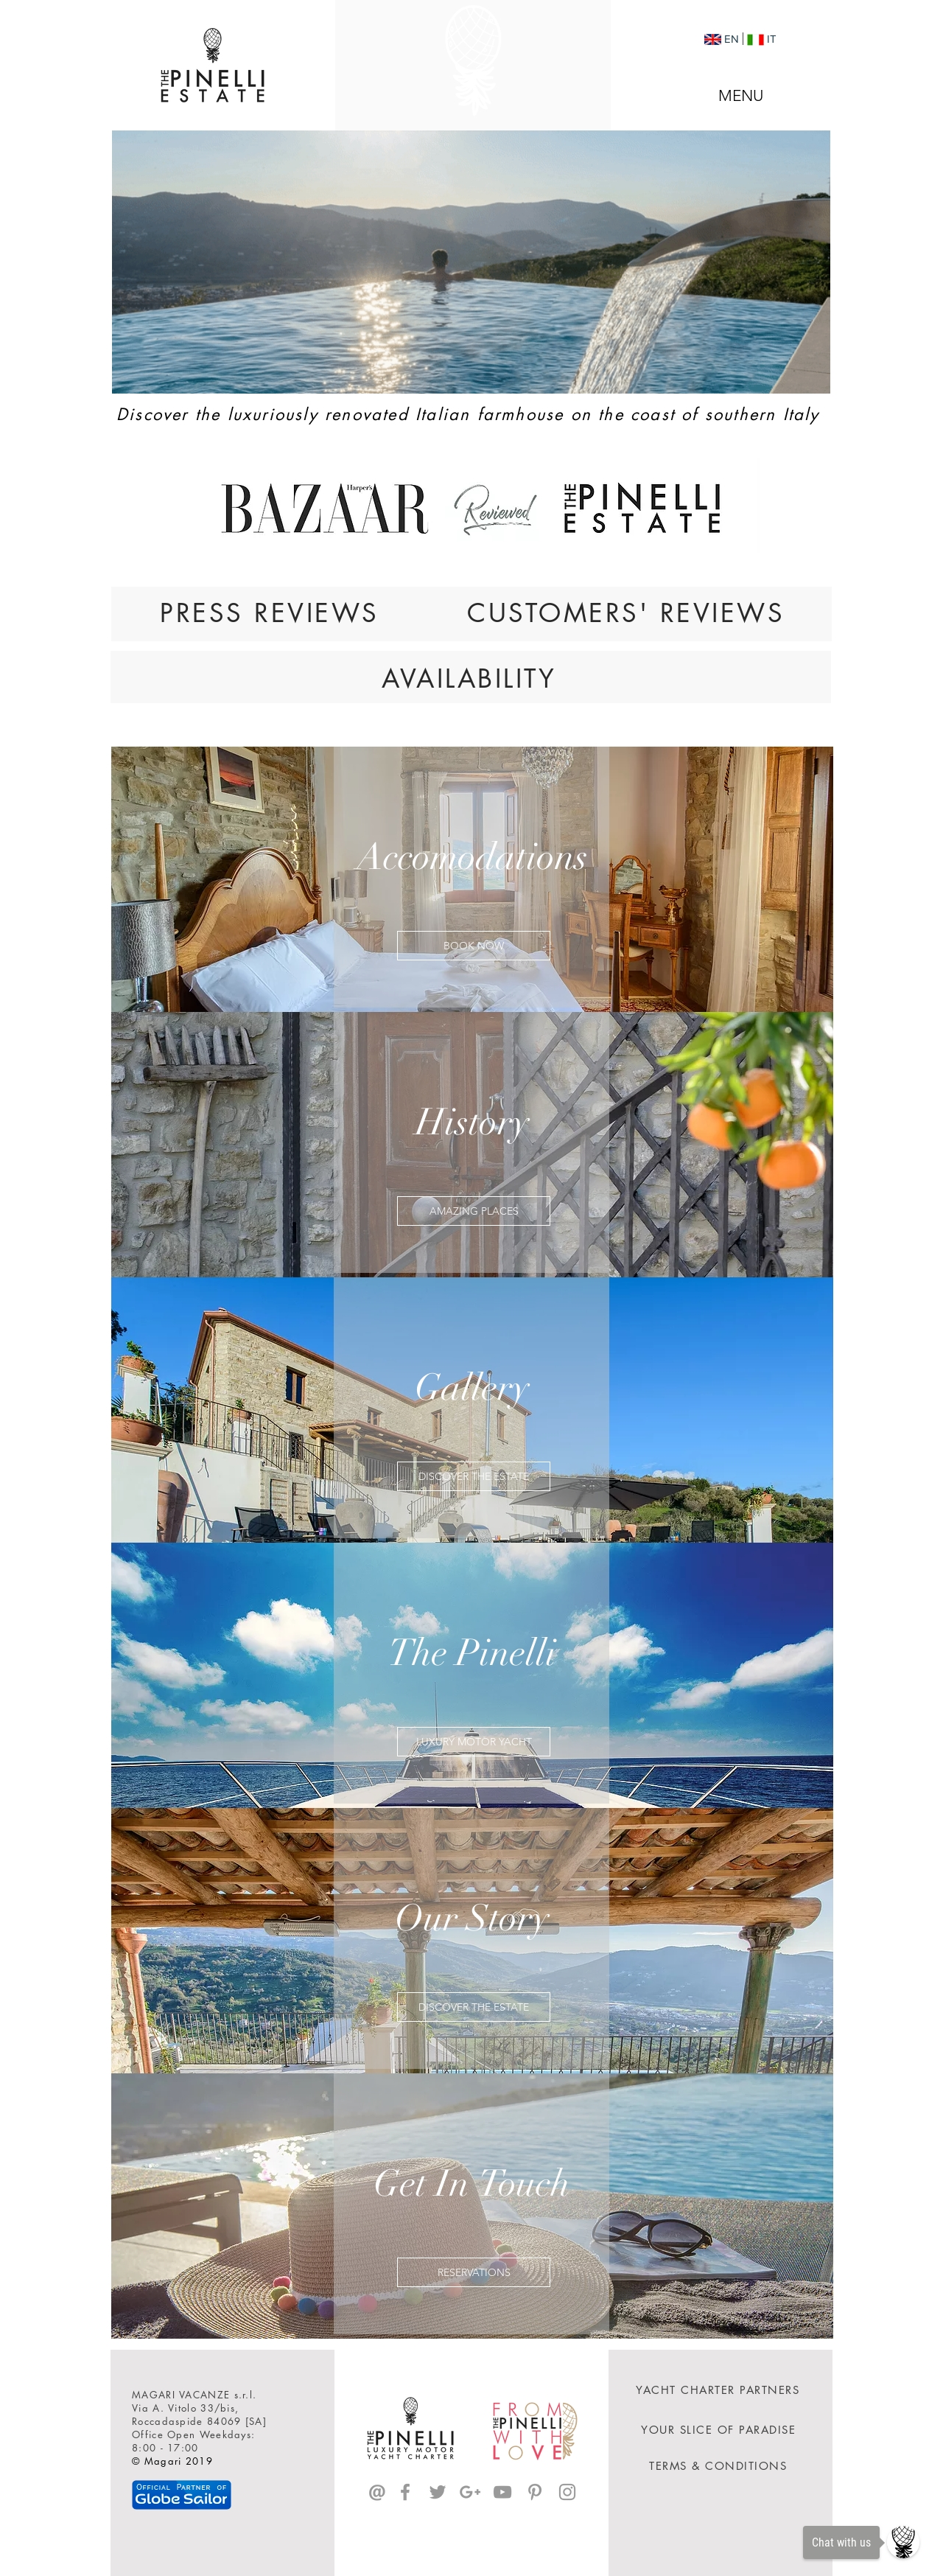 The Pinelli Estate website